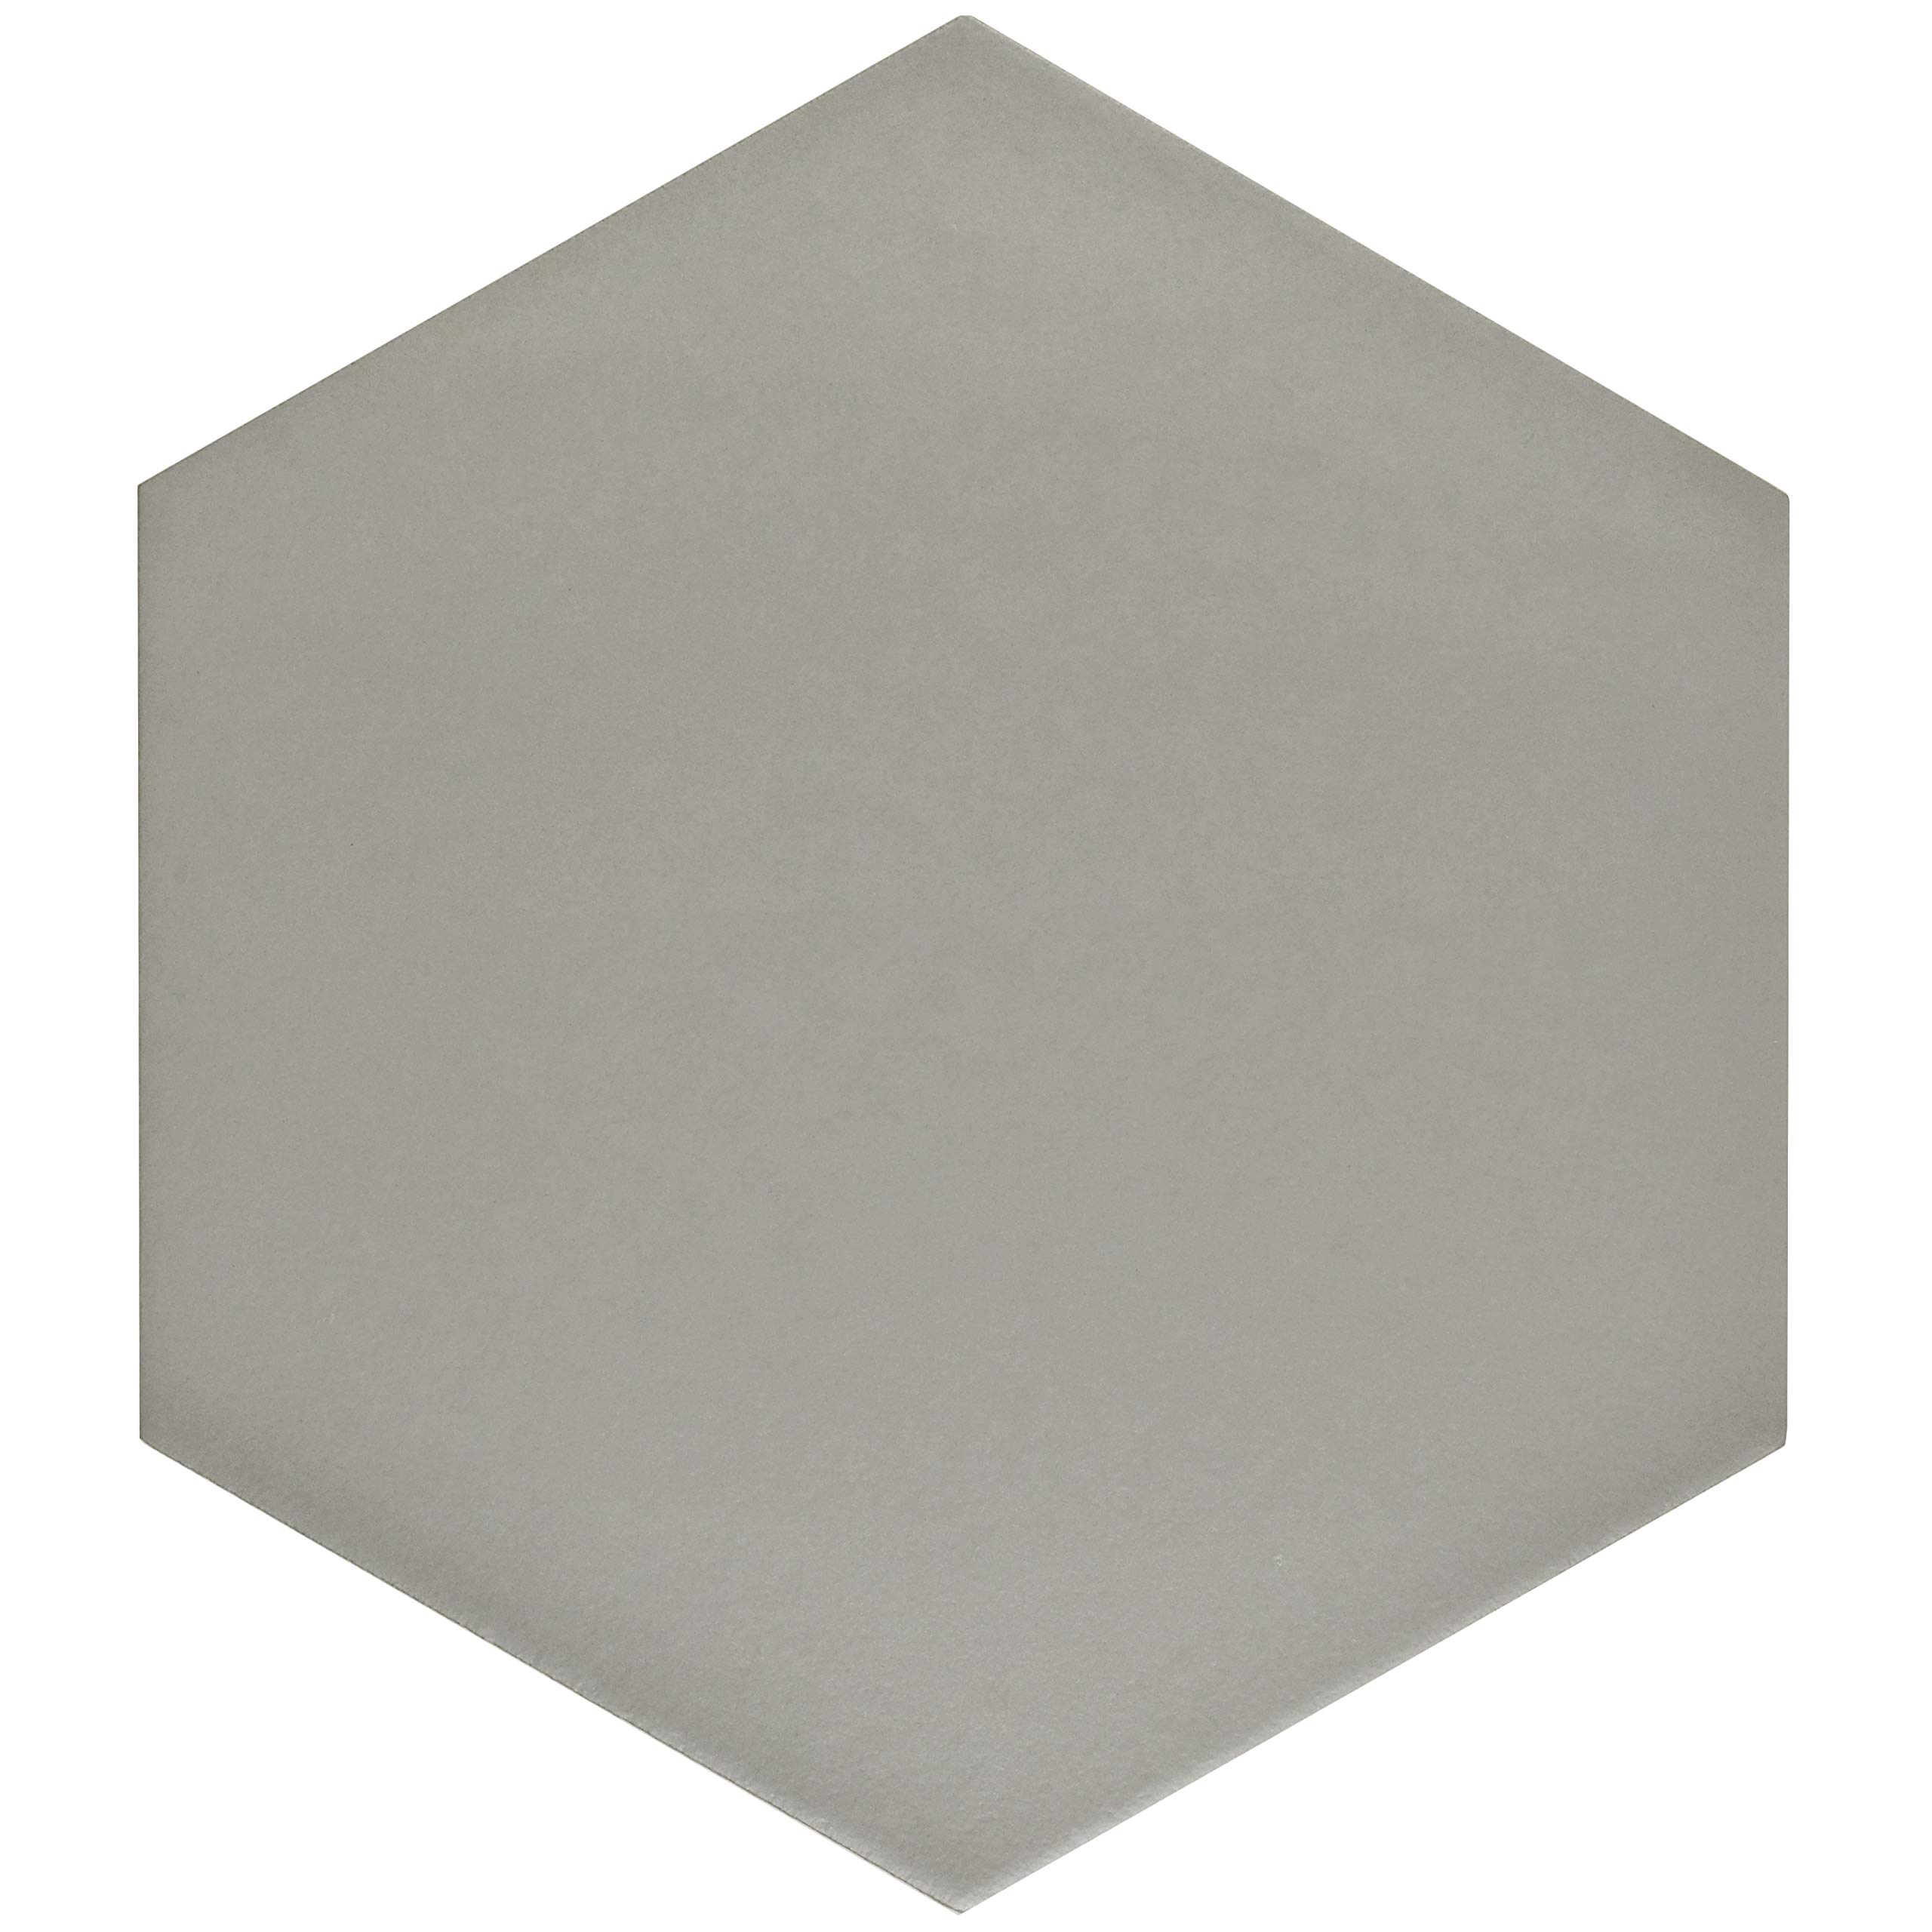 SomerTile FCD10STX Abrique Hex Porcelain Floor and Wall, 8.63'' x 9.88'', Silver Tile 8.625'' x 9.875'' 25 Piece